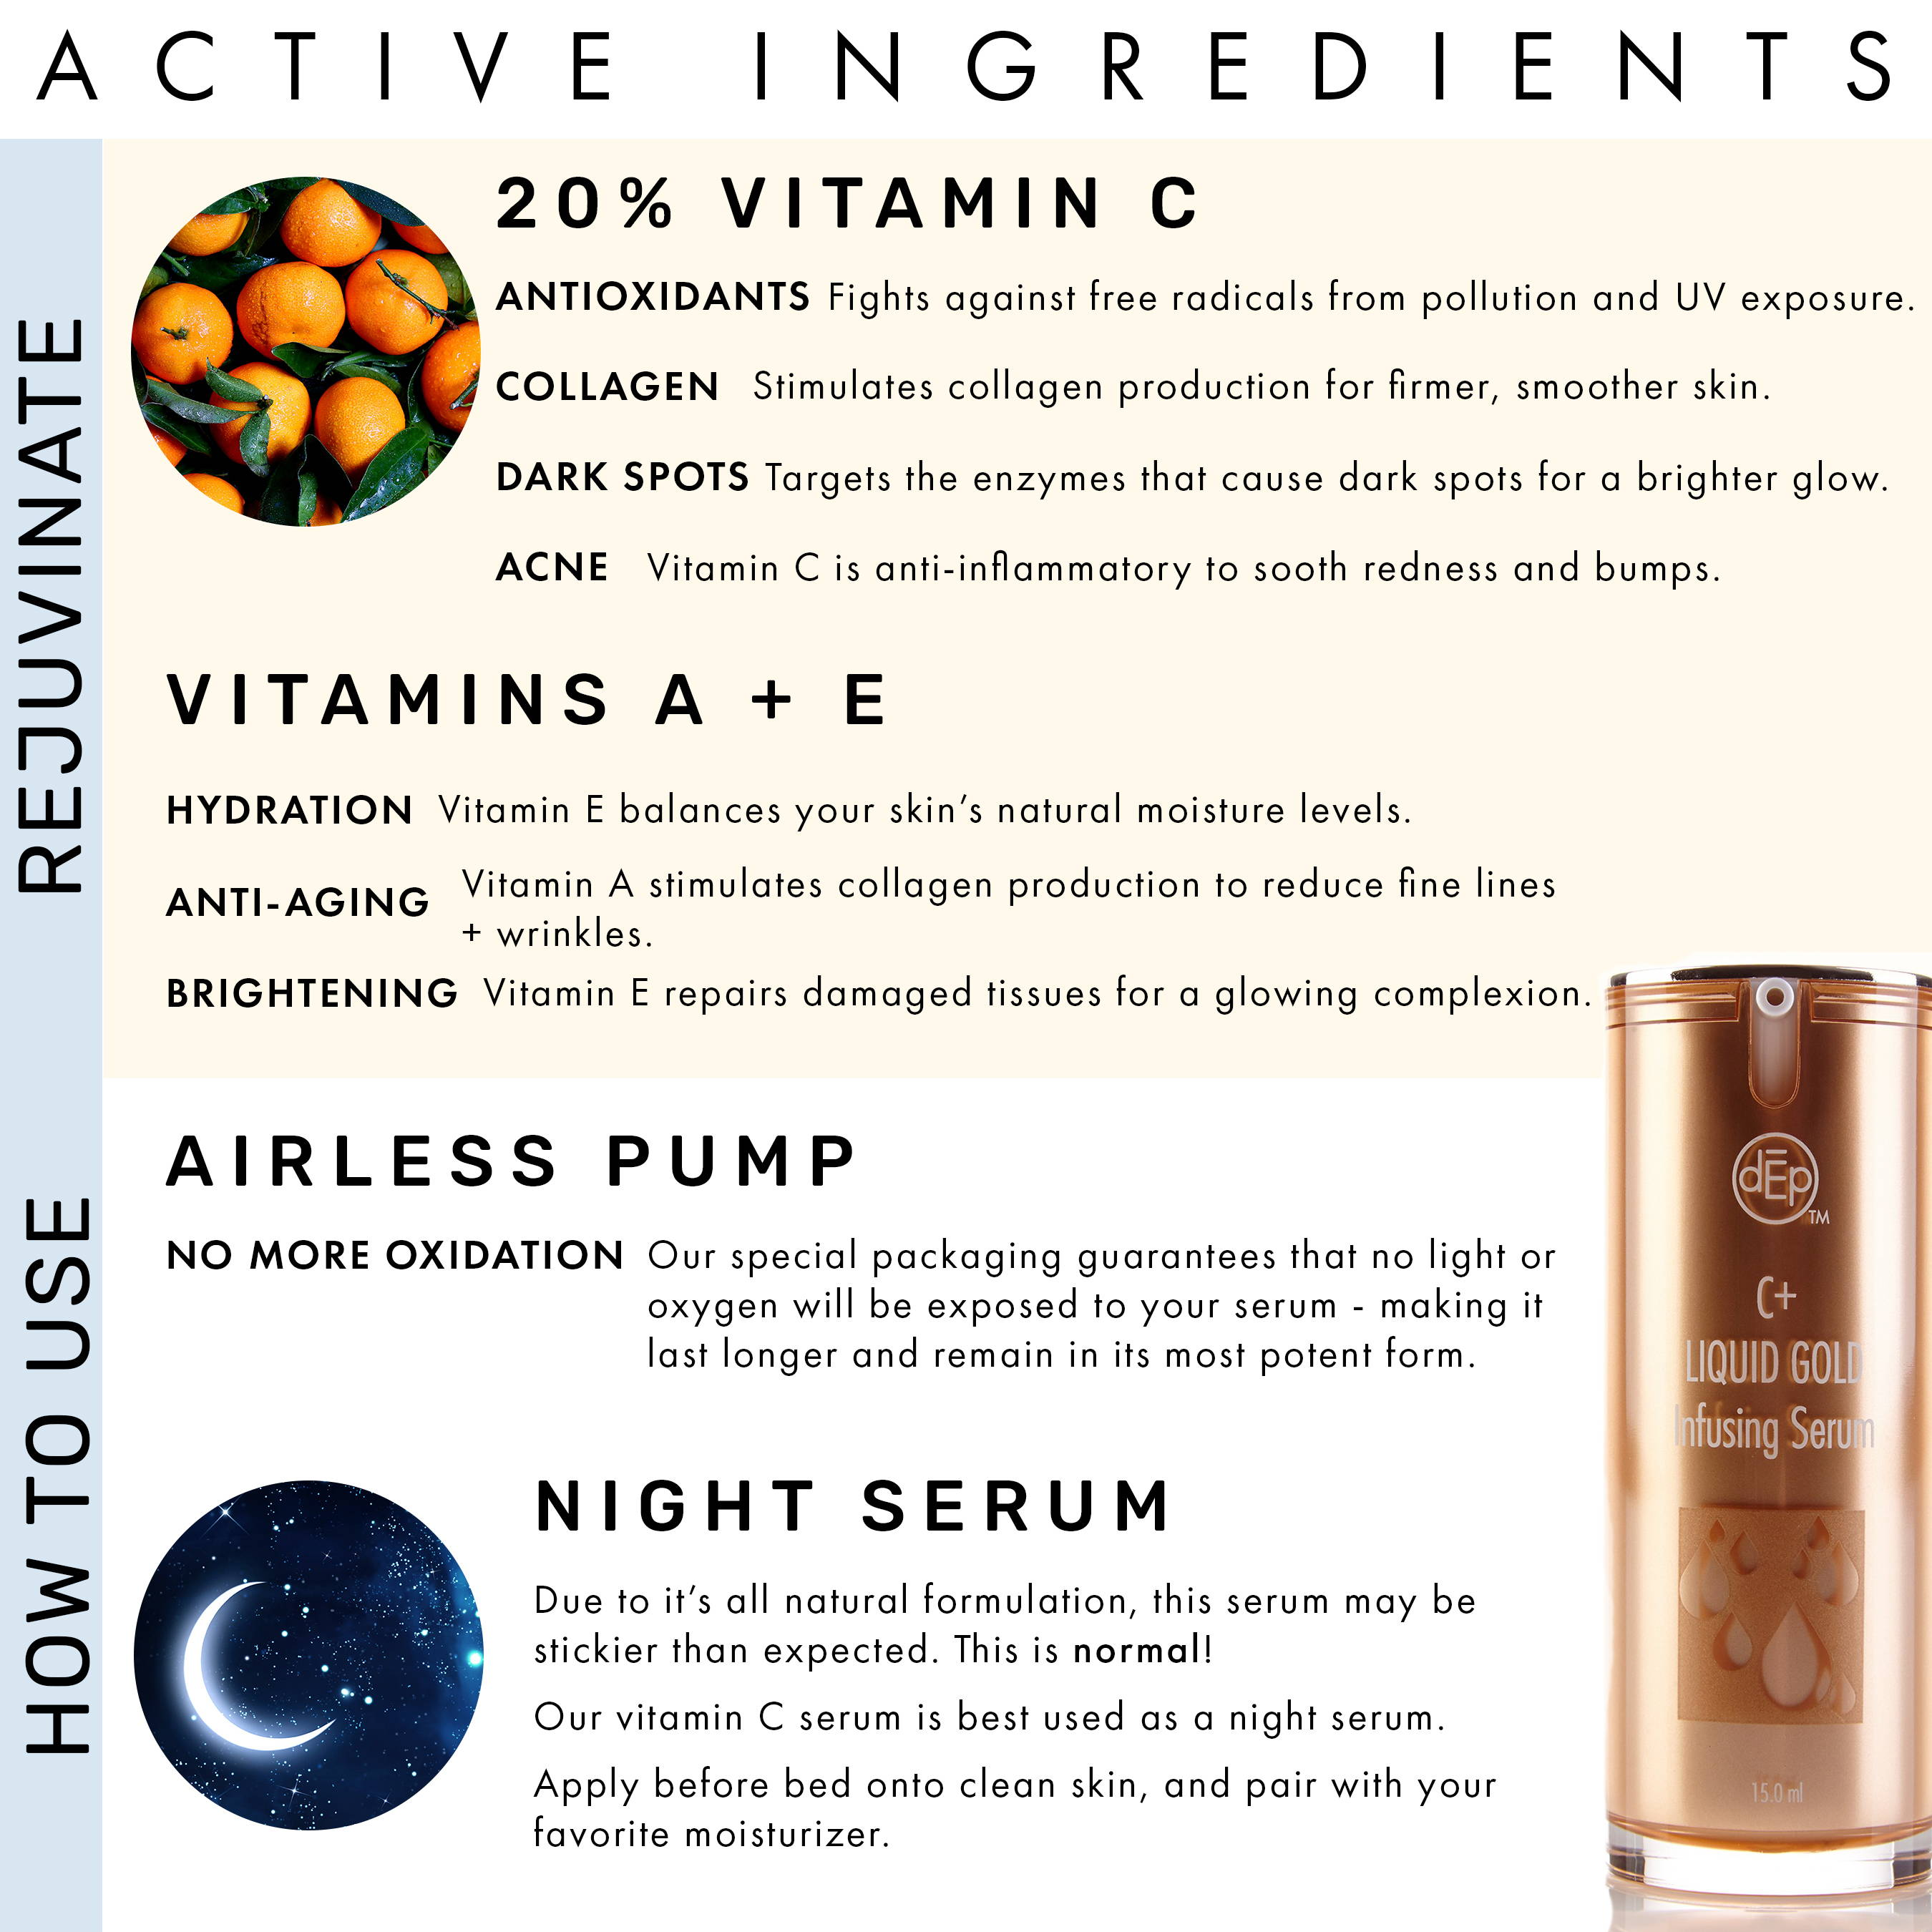 20% vitamin c serum ingredients include specially formulated vitamin c with antioxidants, collagen producing, dark spots, acne, vitamins a and e for hydration anti-aging brightening in an airless pump